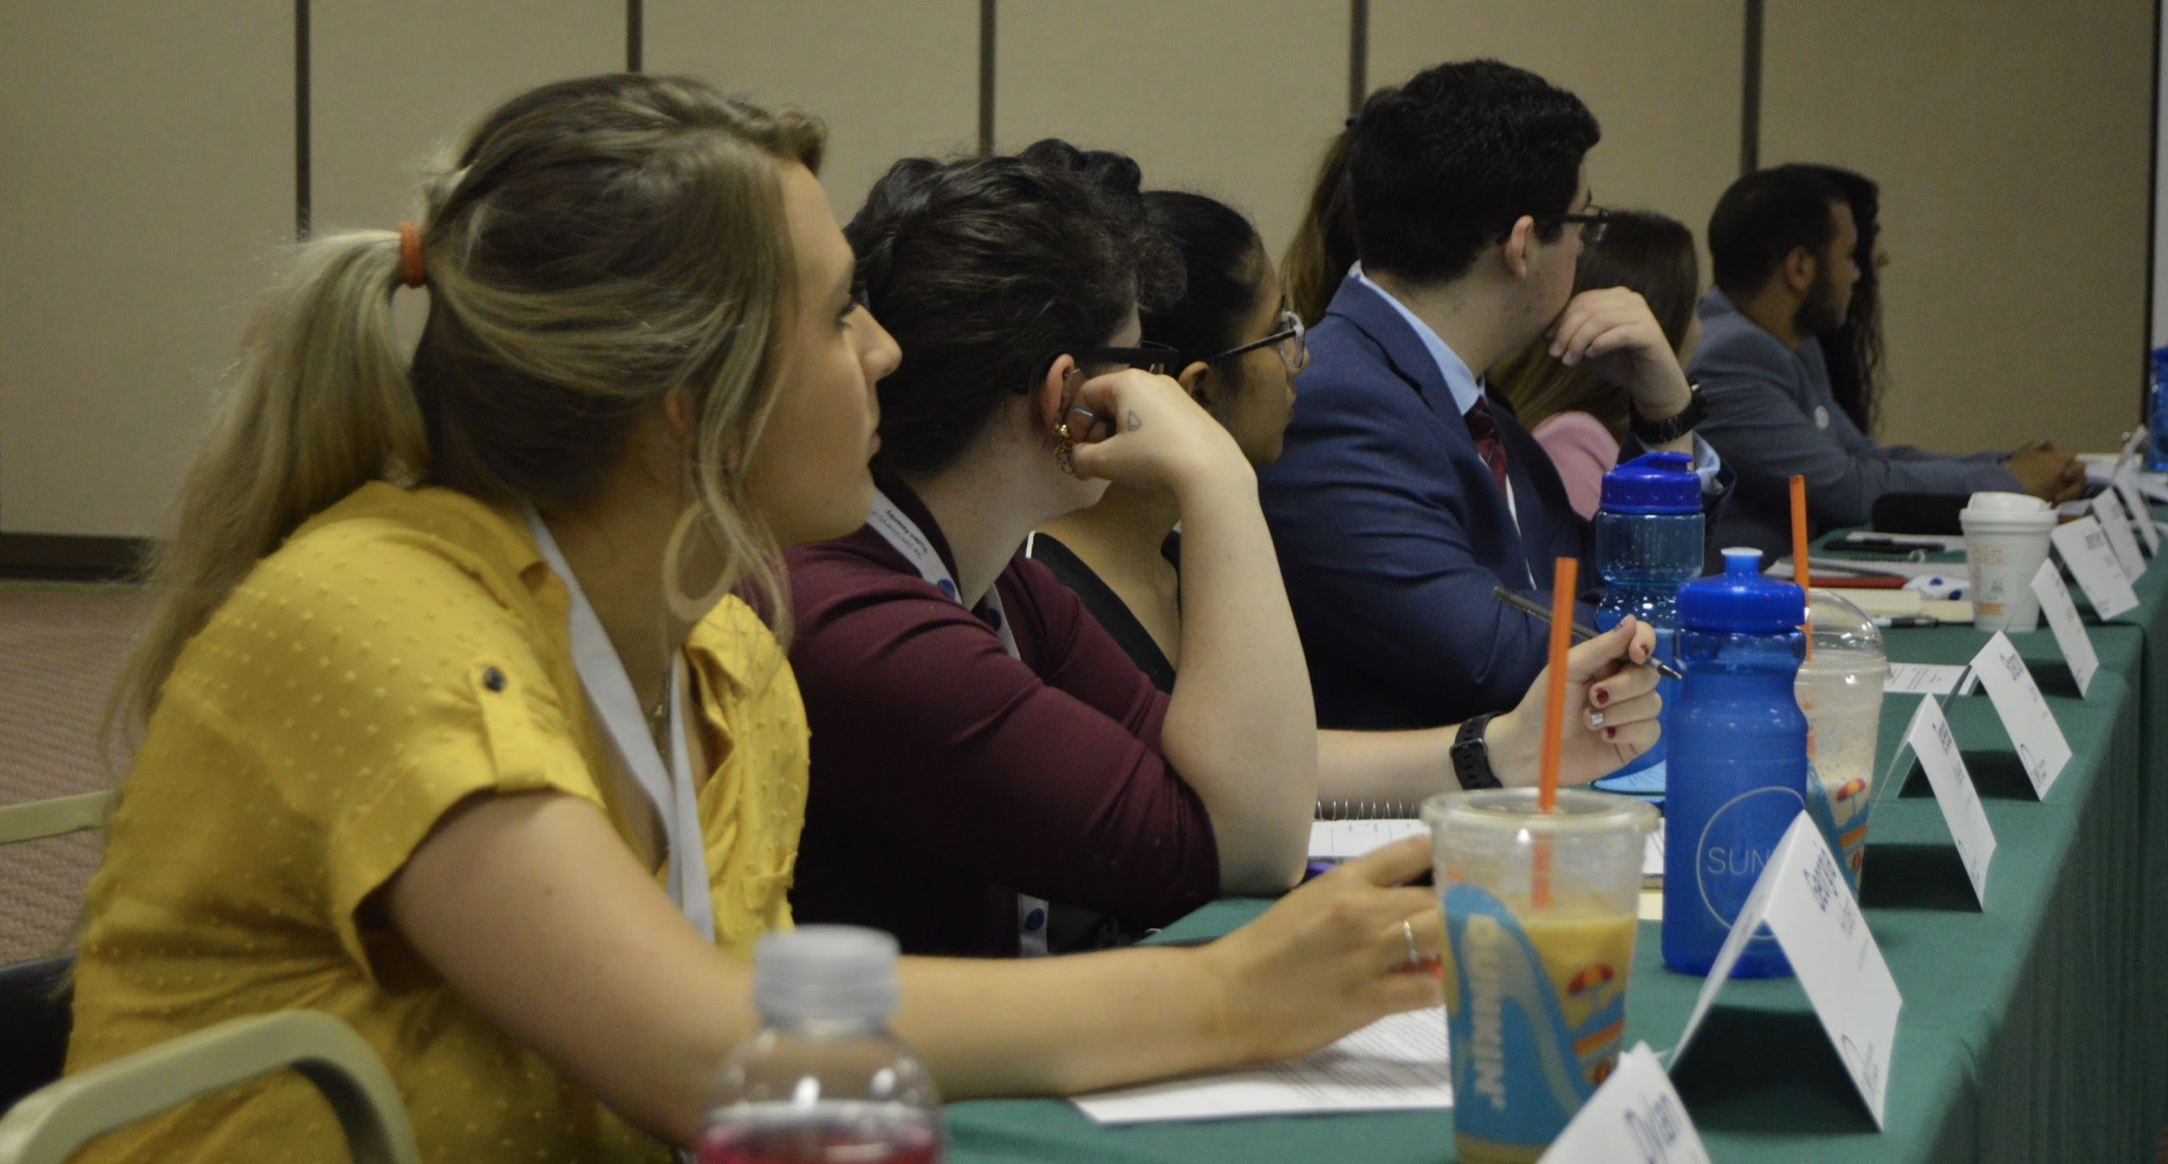 Members of the Executive Committee sitting at a table during the business meeting, looking towards a presenter who is not pictured